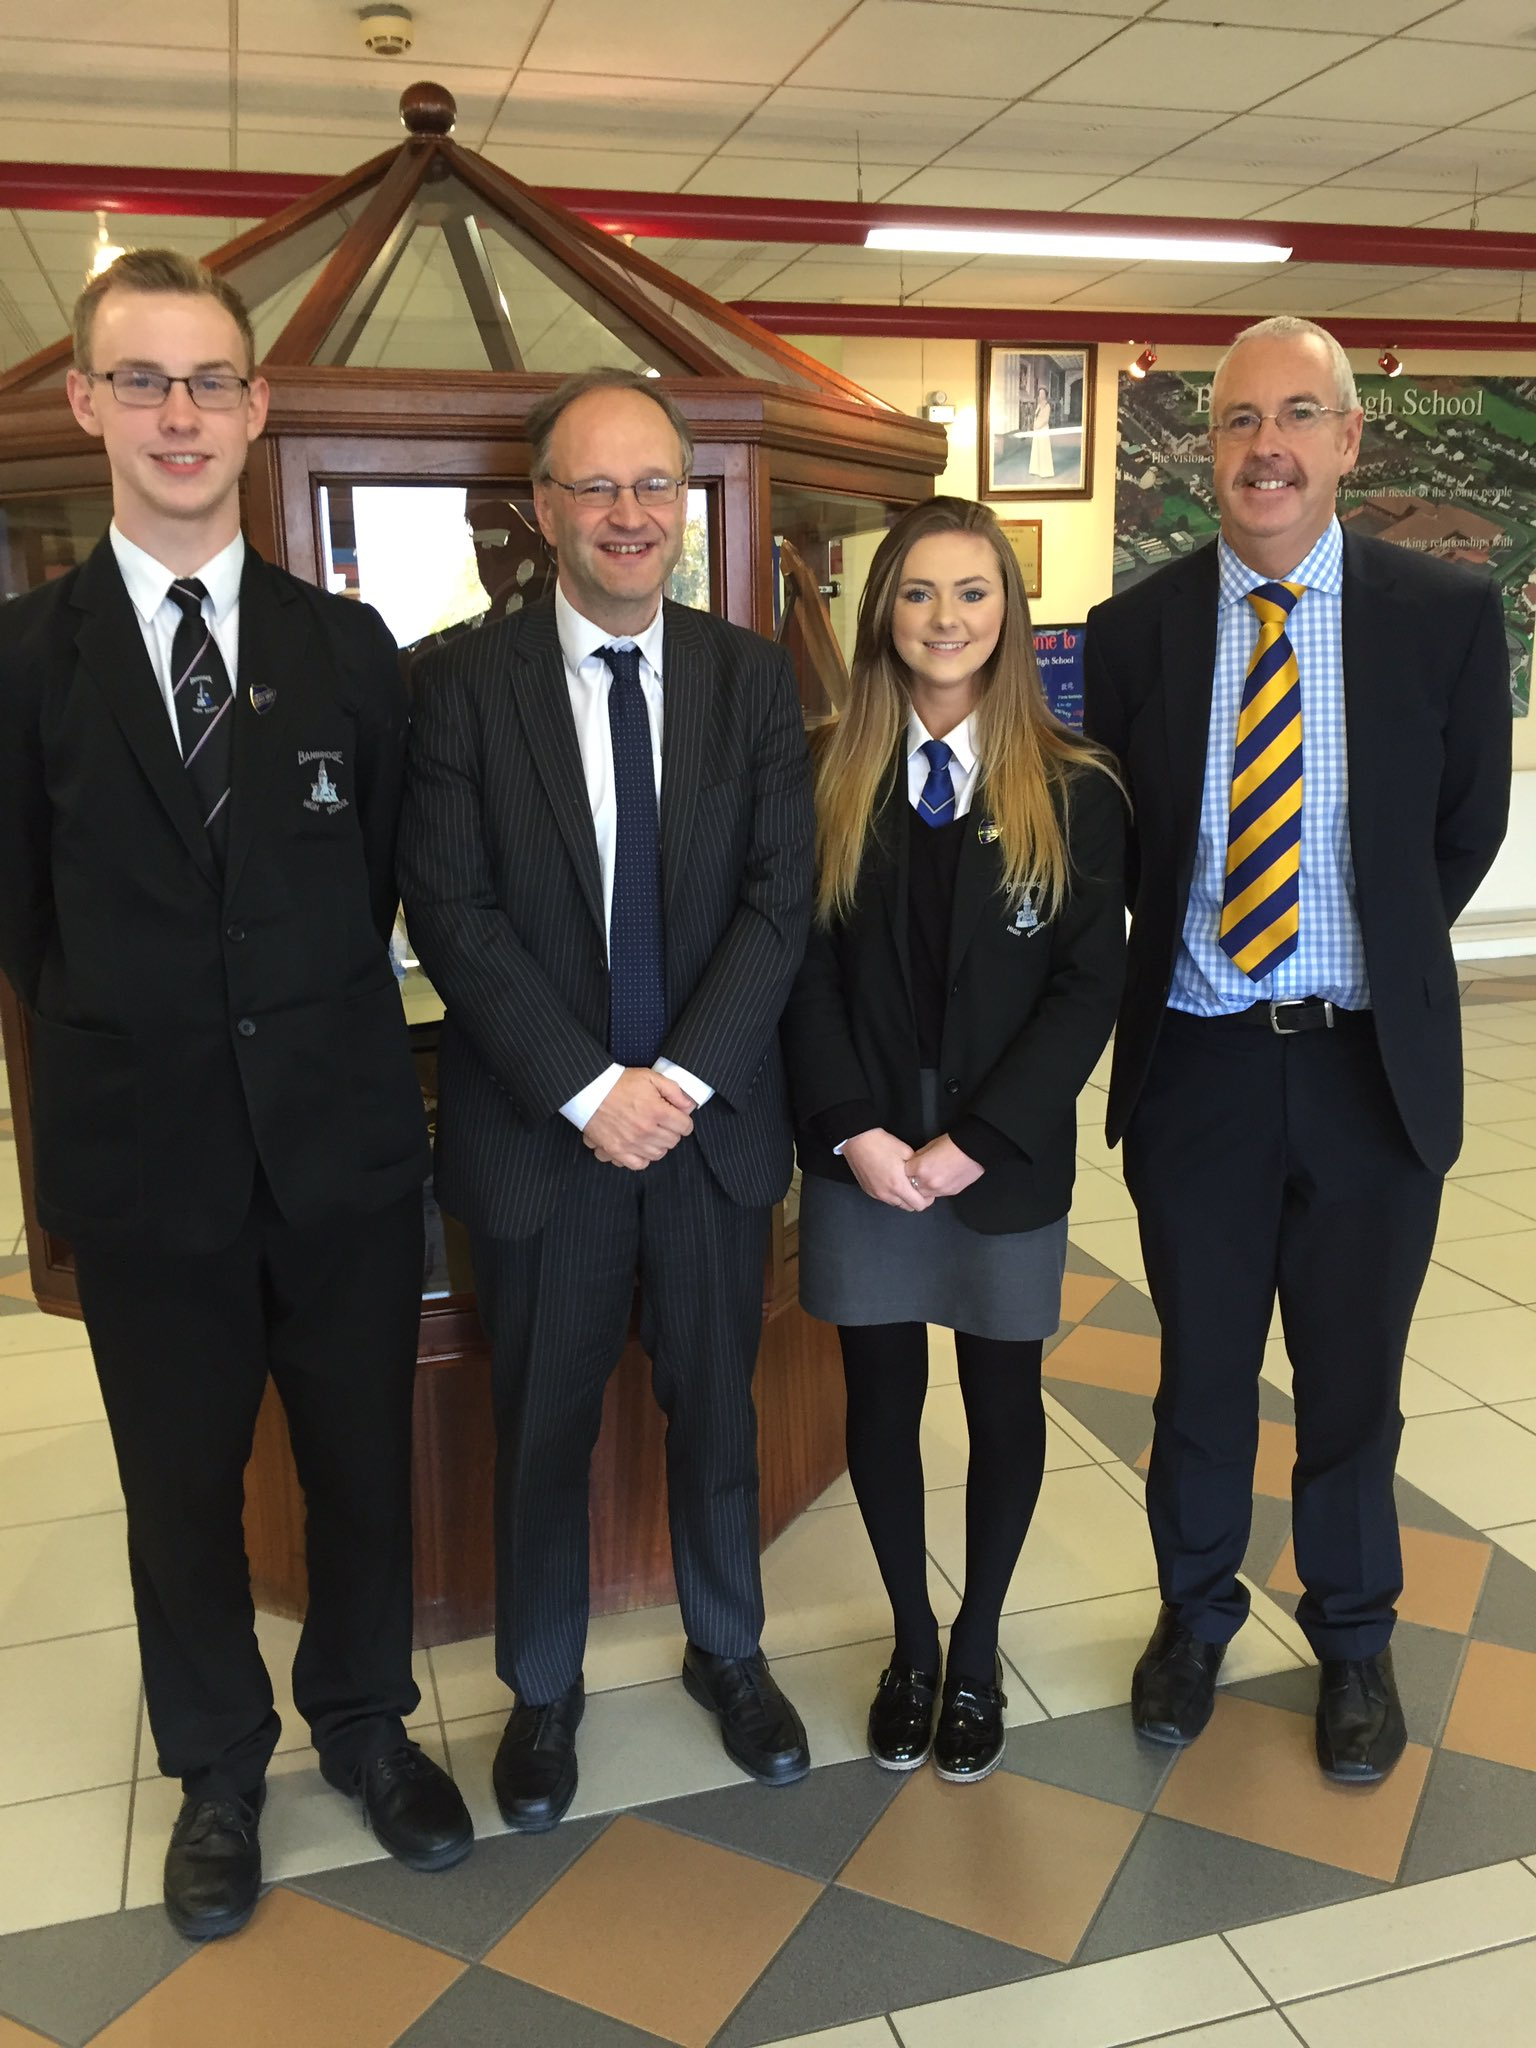 Education Minister with Principal, Head Boy & Head Girl